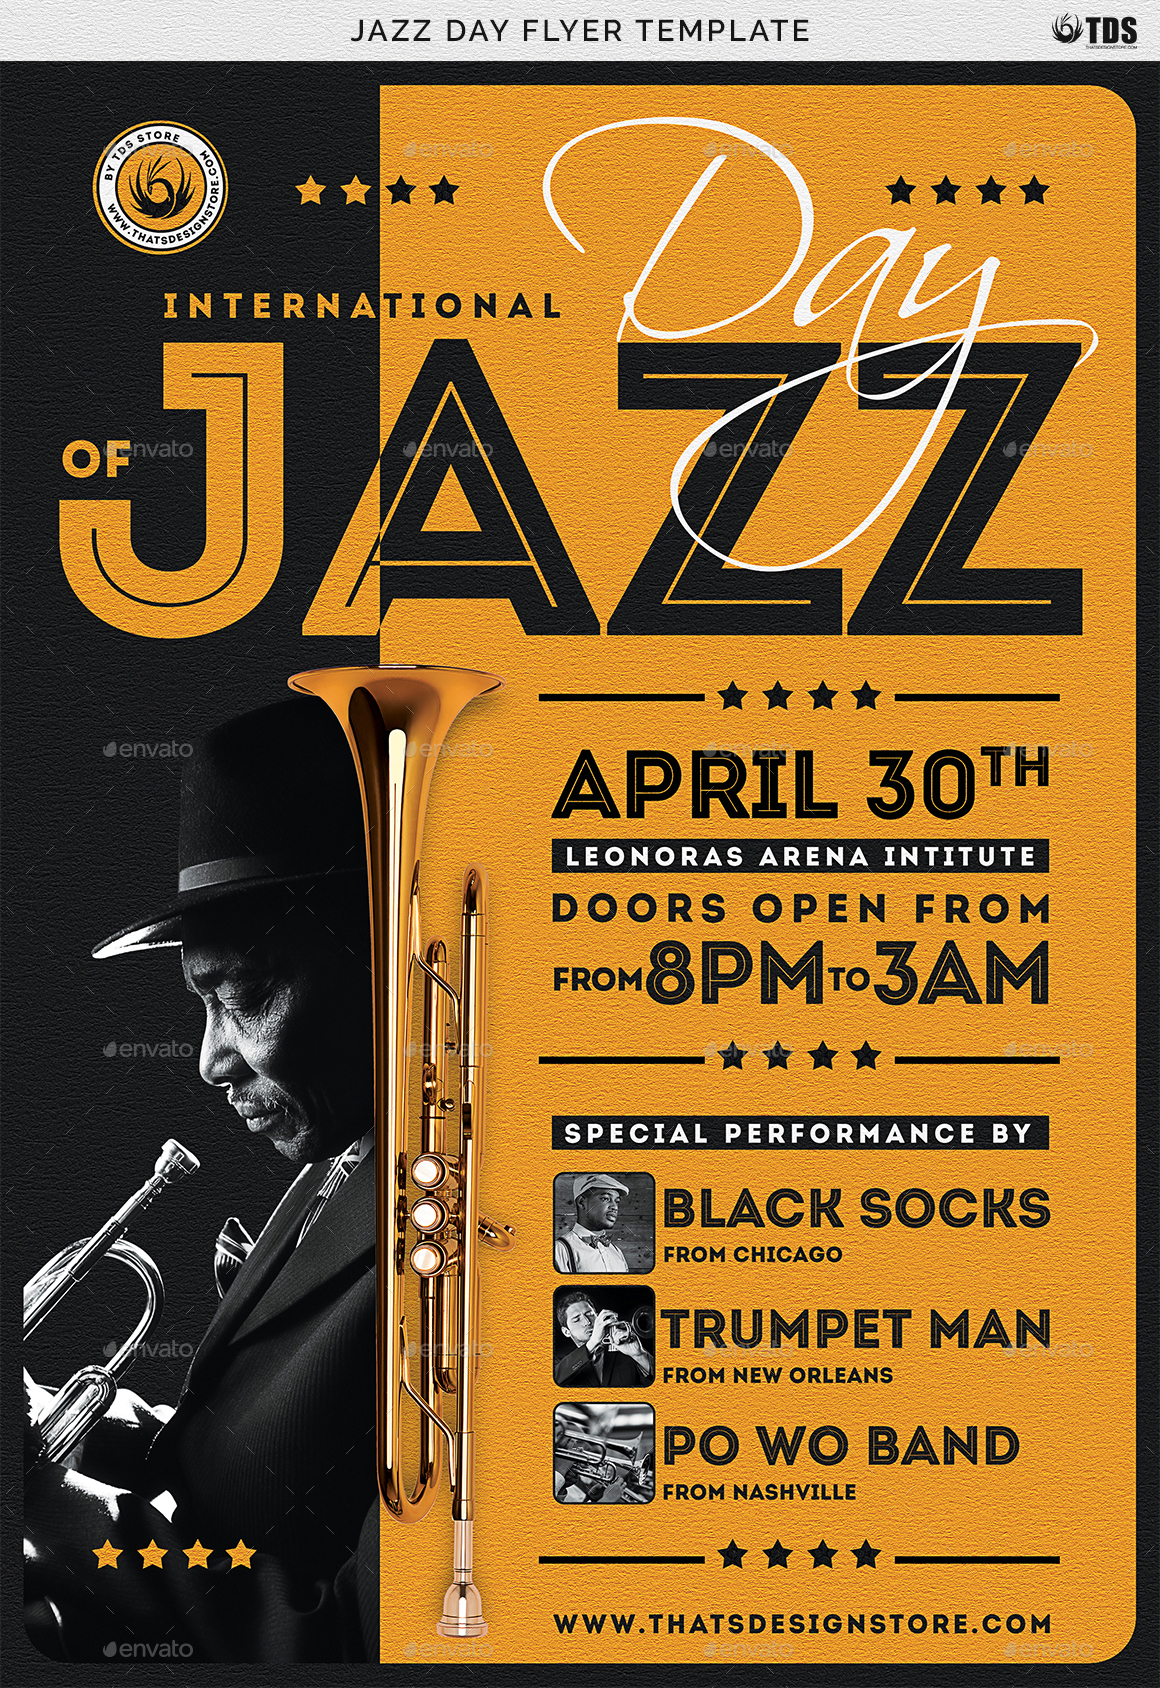 Jazz Day Flyer Template By Lou606 Graphicriver